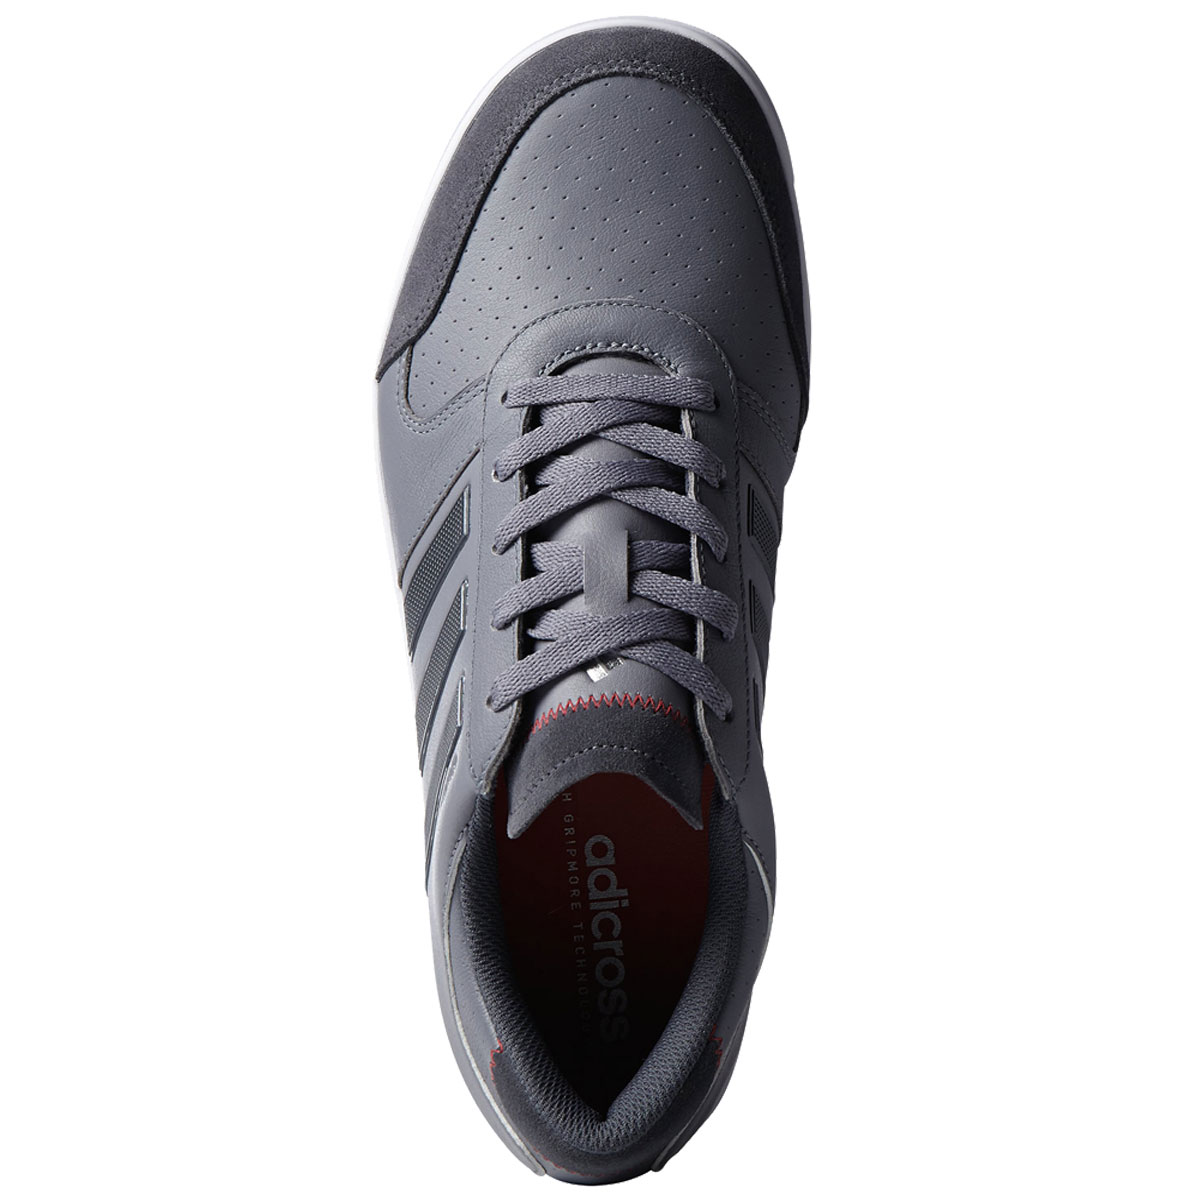 Adidas Golf Spikeless Shoes